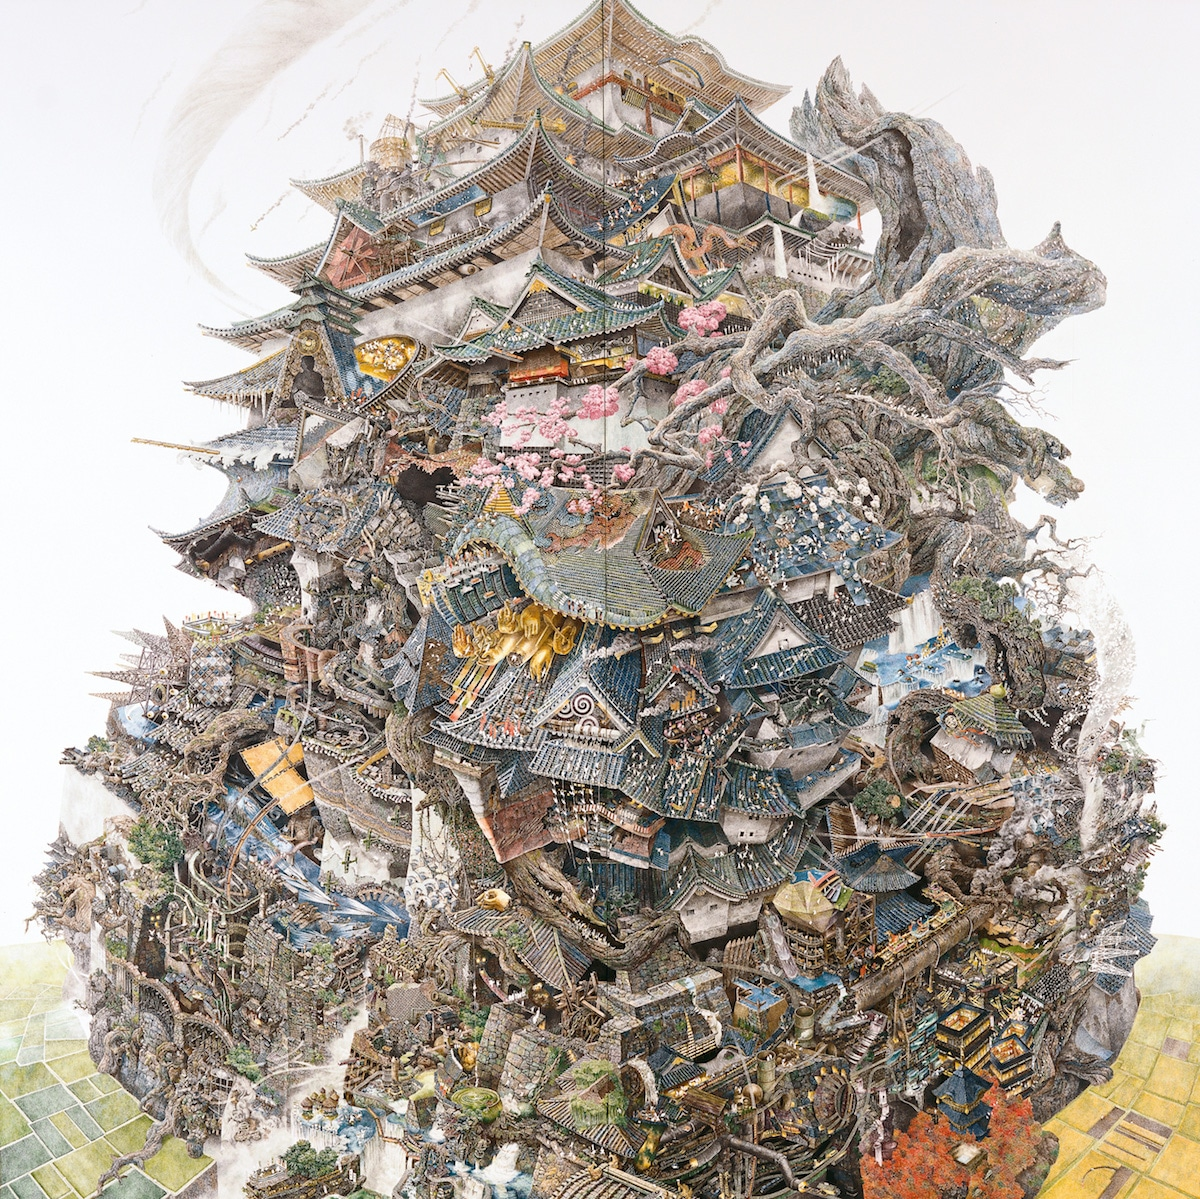 Largescale drawing by Manabu Ikeda